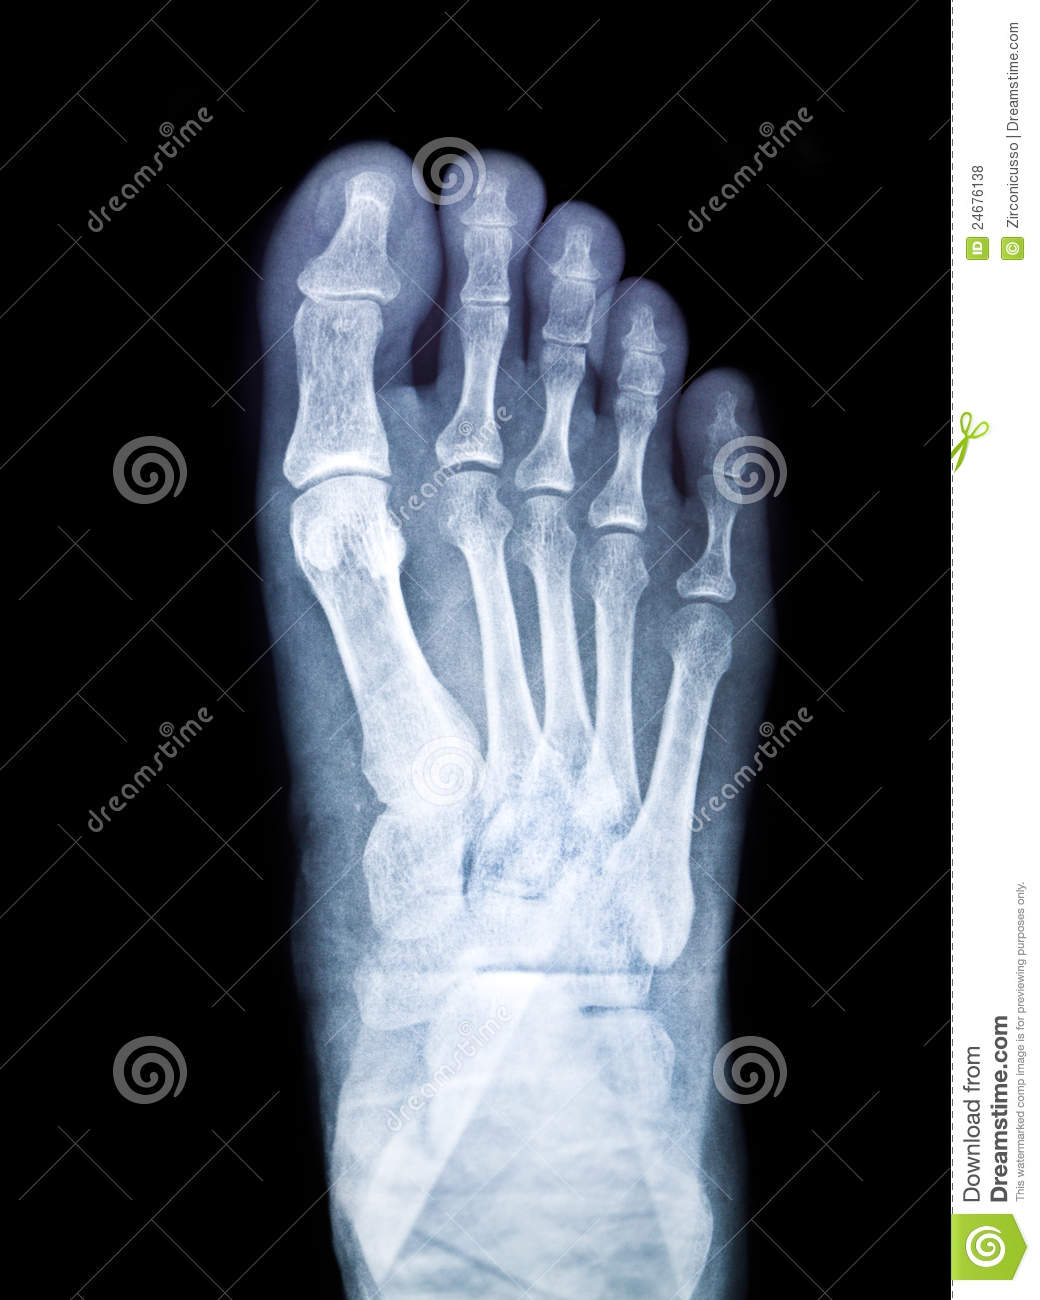 x ray film royalty free stock photos image 24676138 state clip art state clip art free